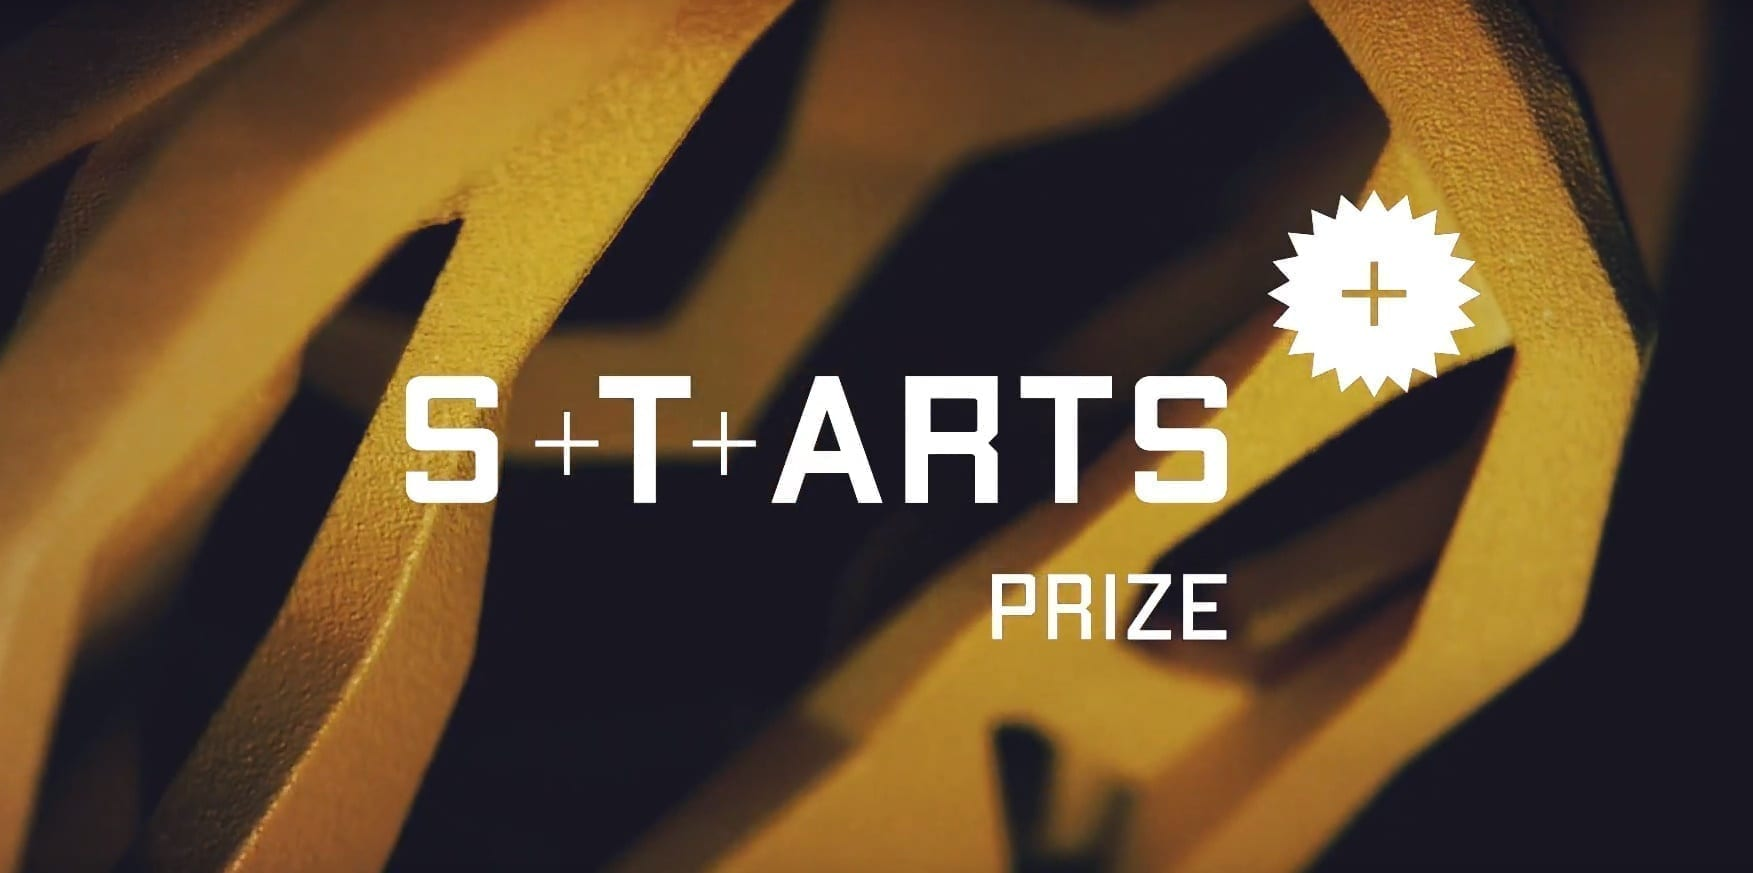 European Commission STARTS Prize submissions open